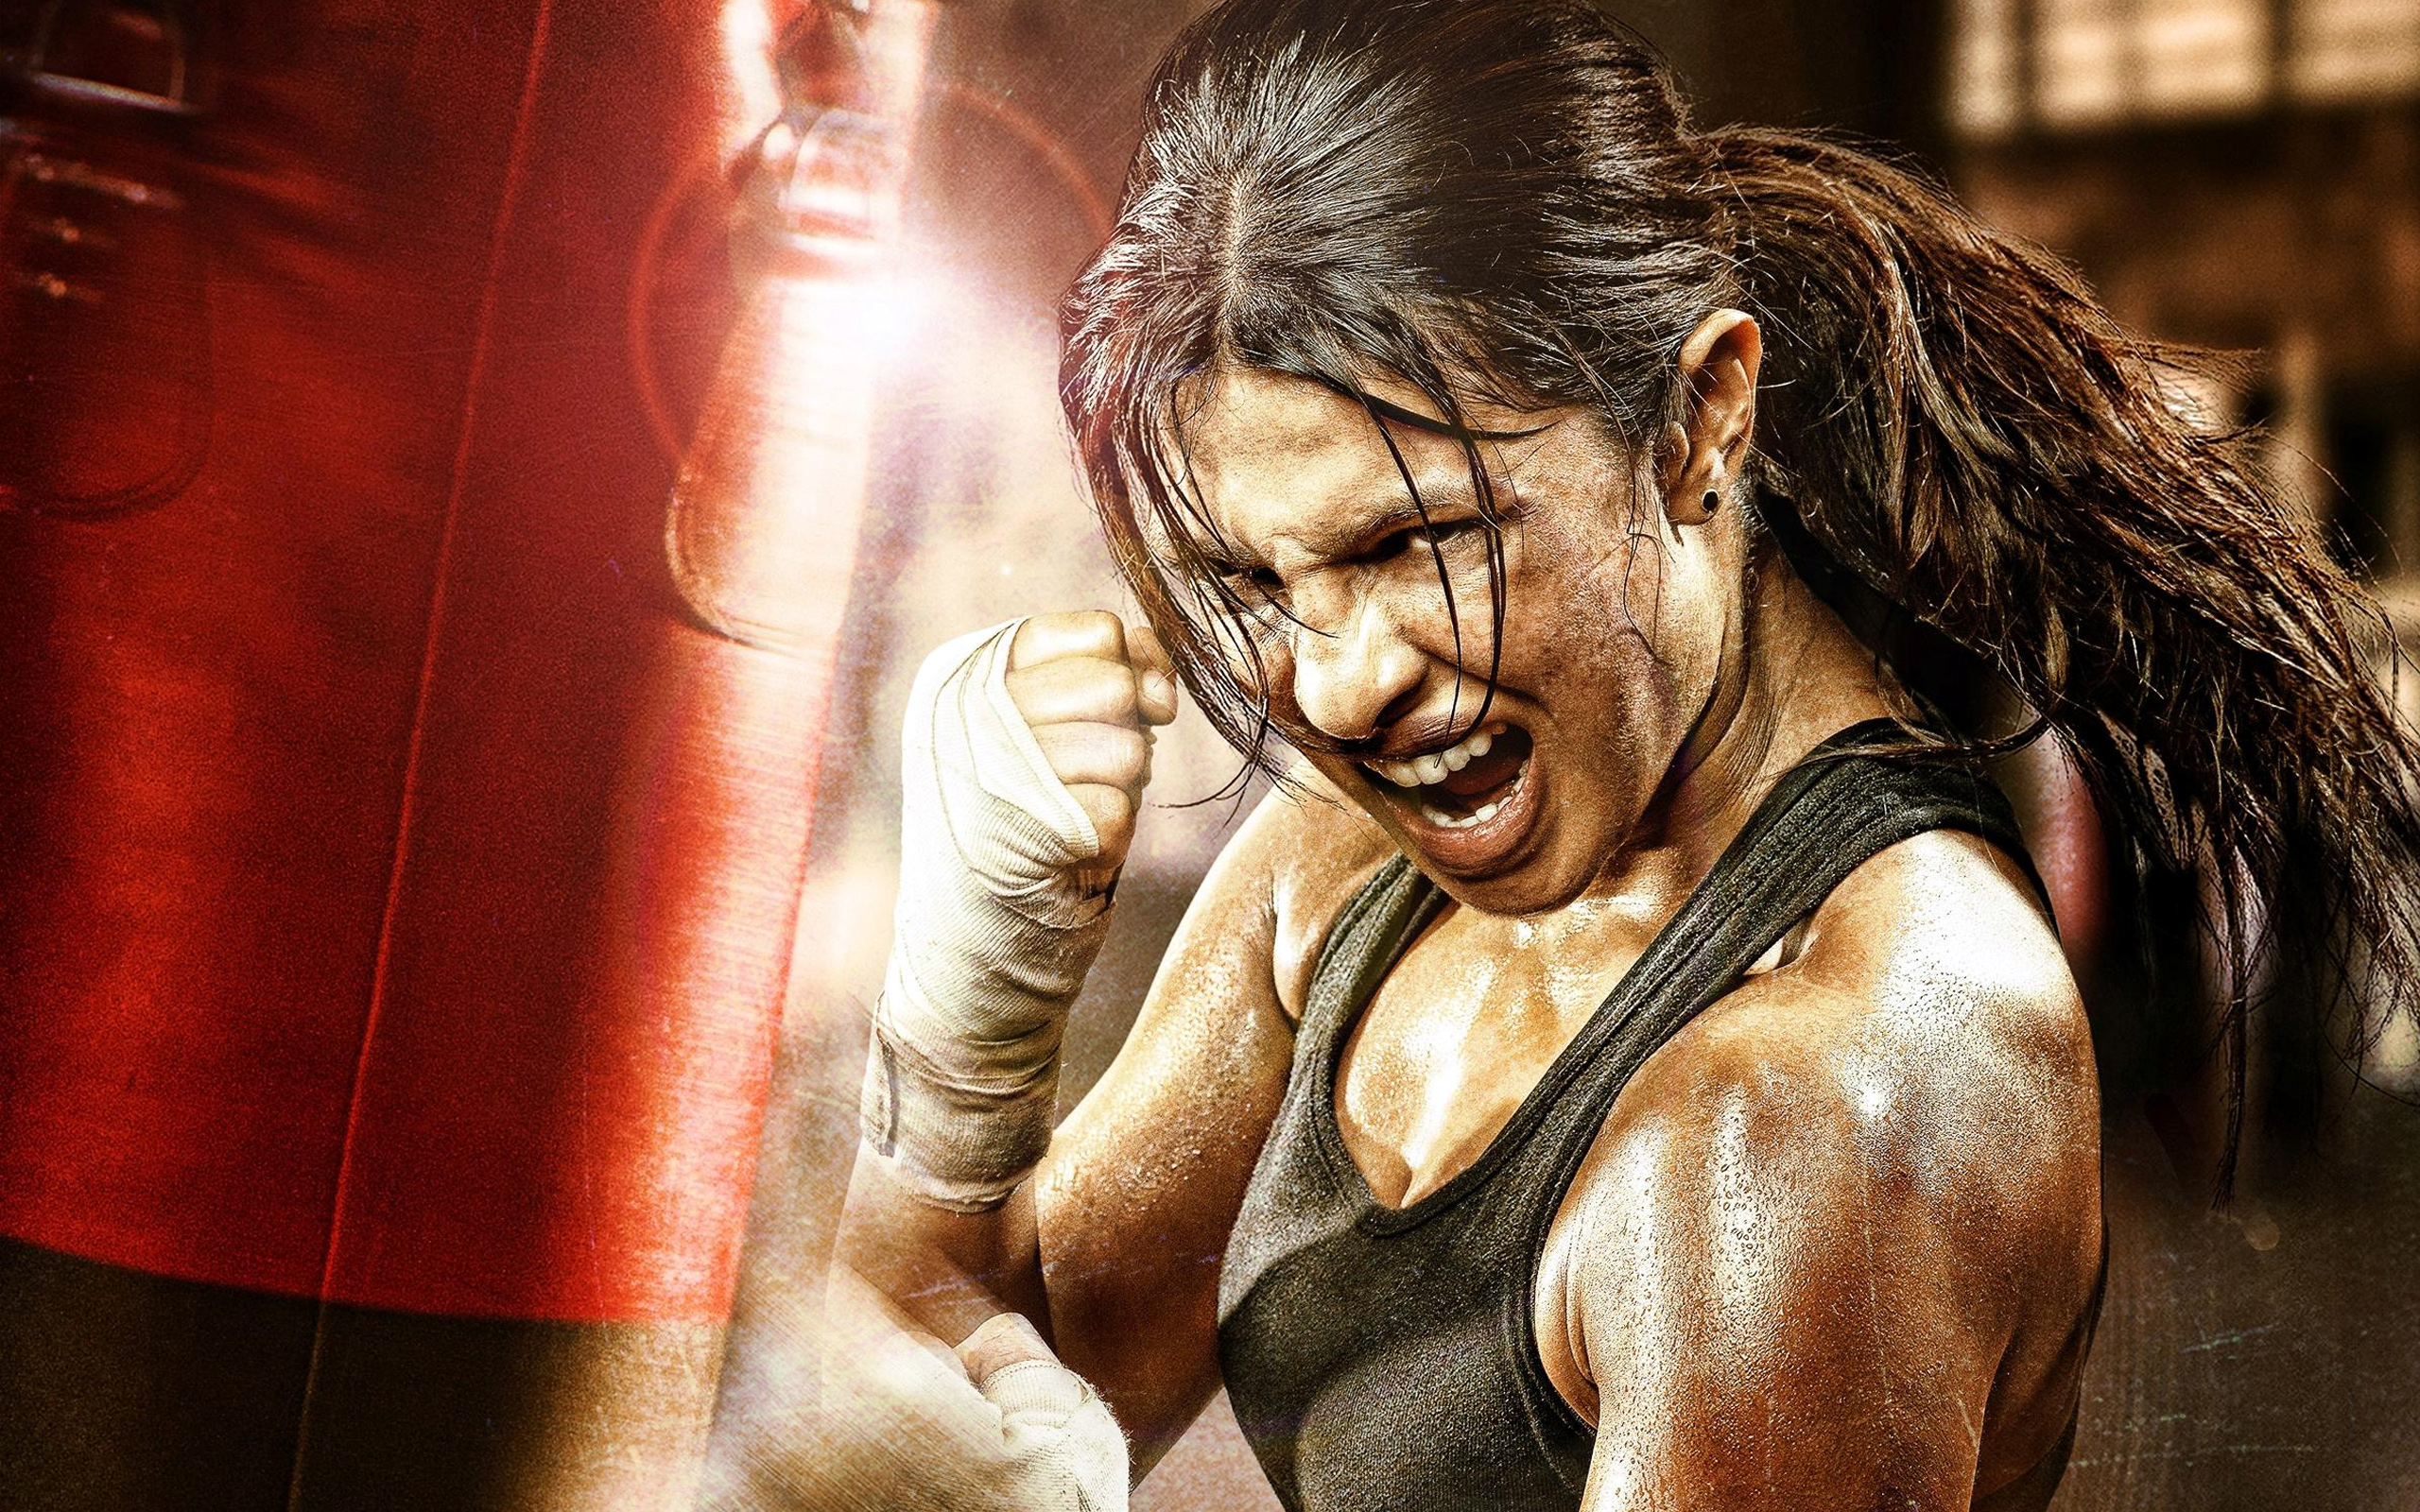 Priyanka Chopra Mary Kom wallpaper